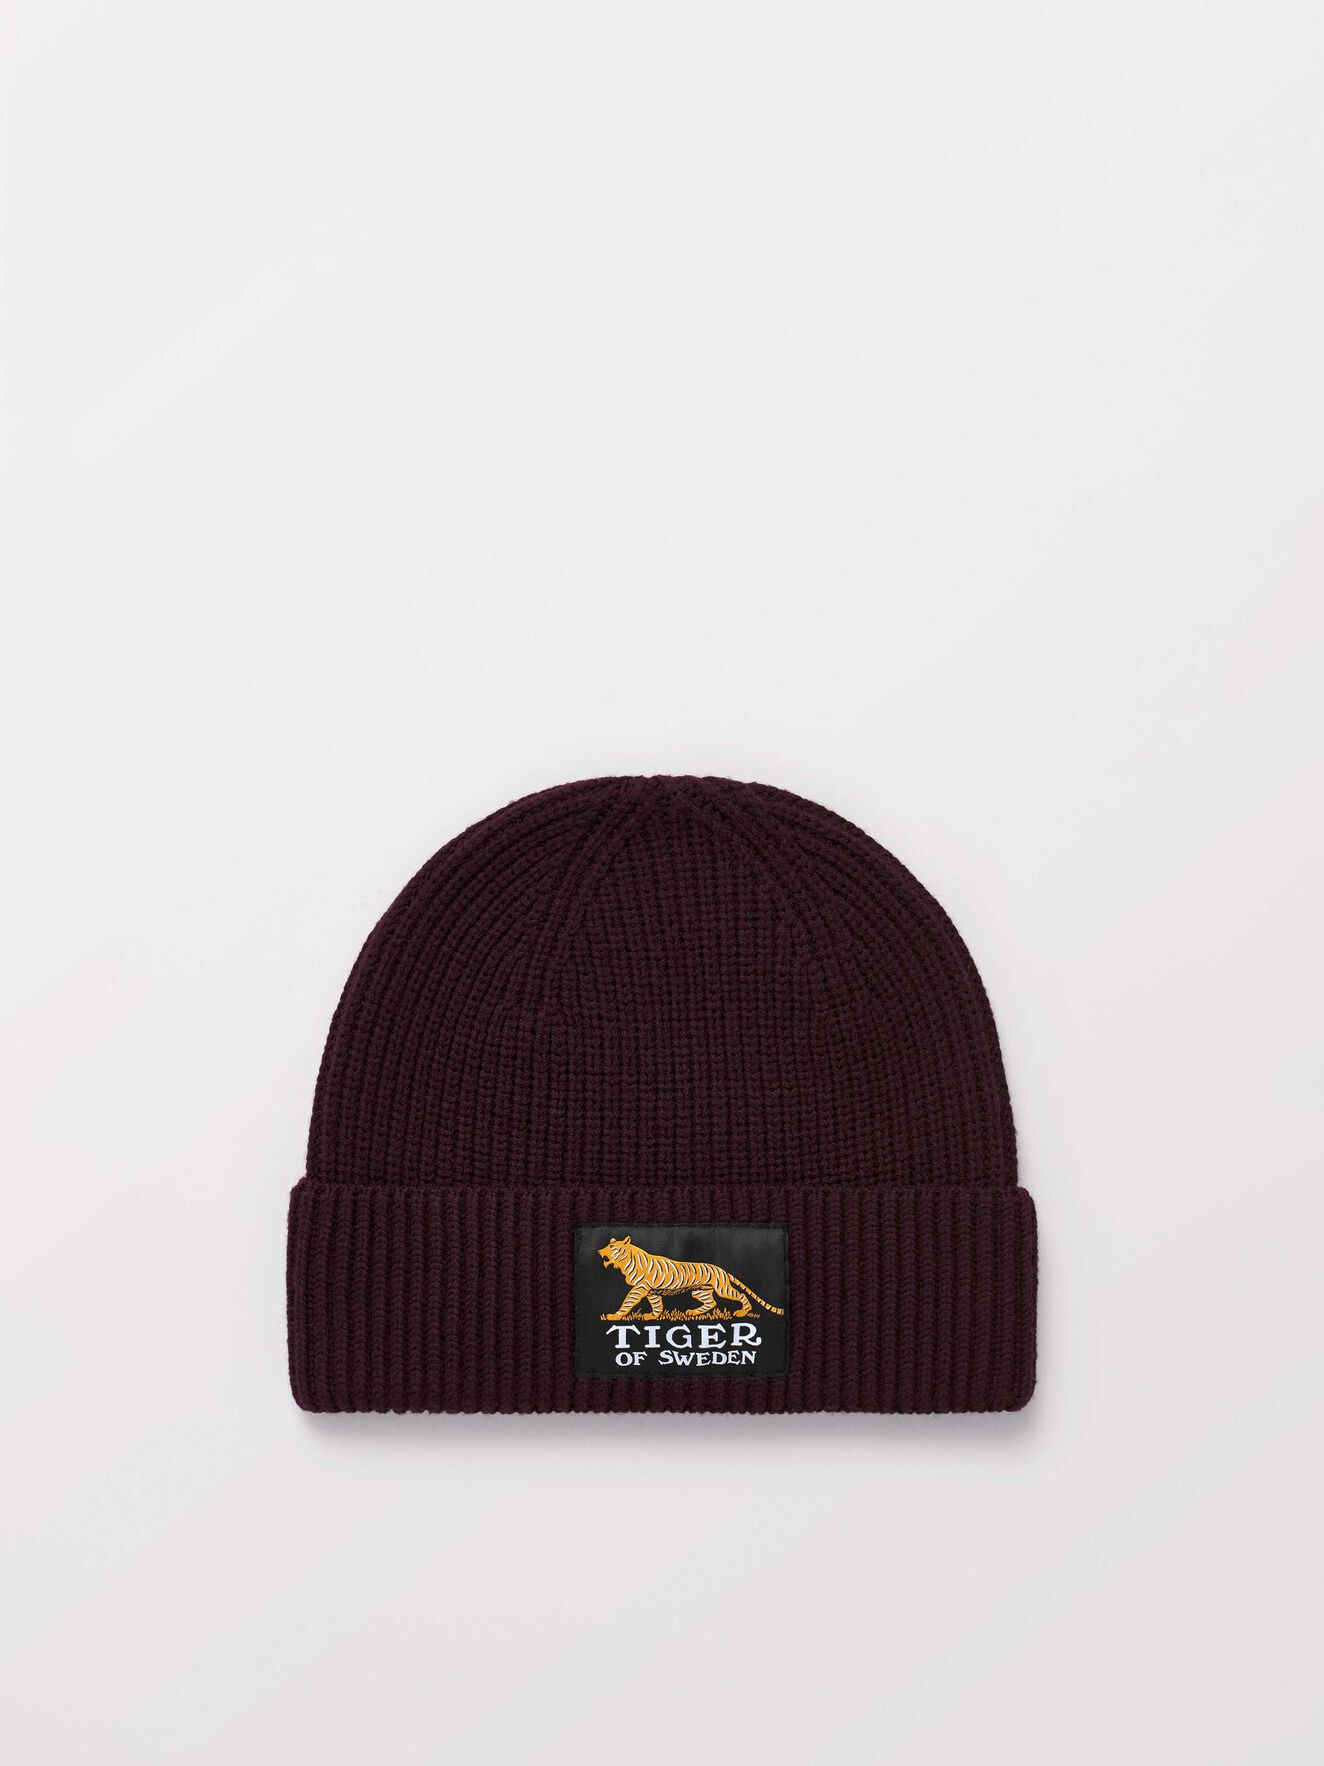 Huntt Beanie in Burgundy from Tiger of Sweden